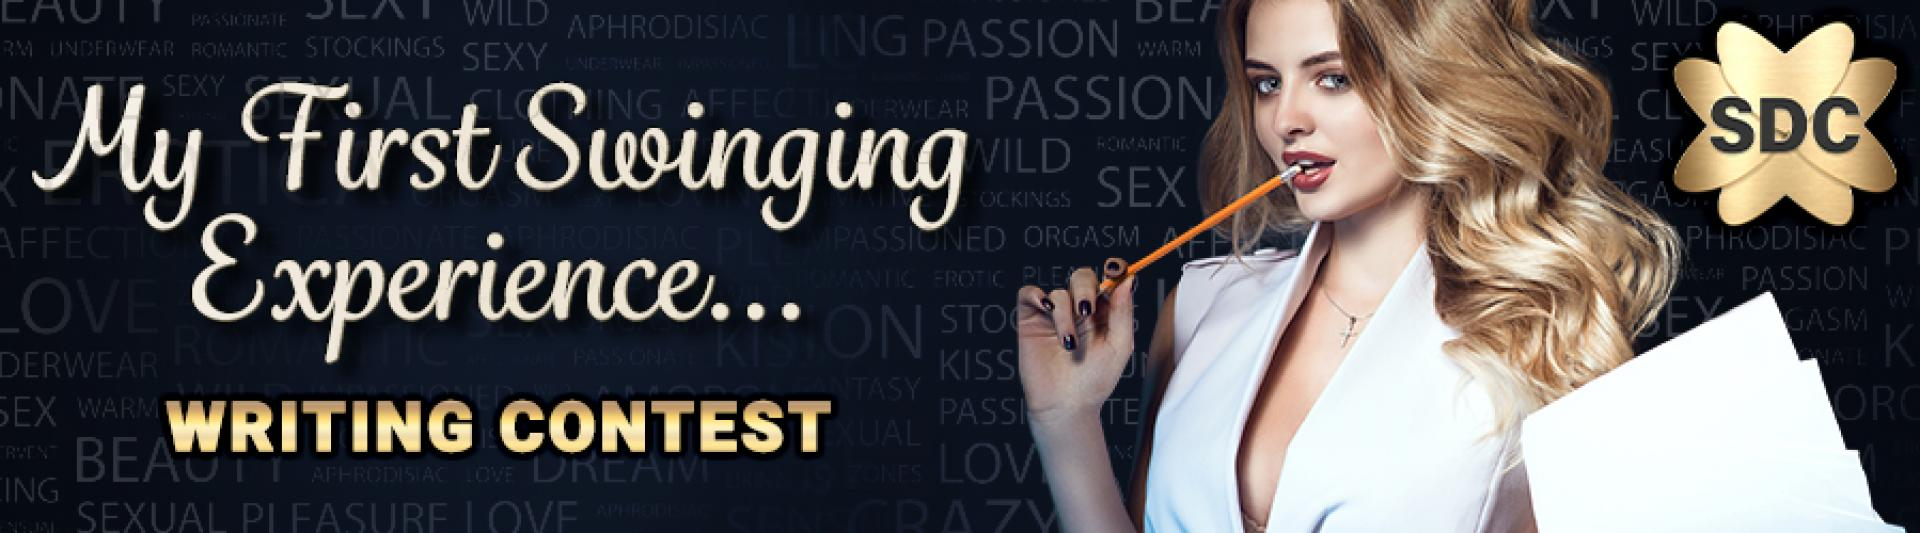 SDC Erotic Writing Contest First Swinging Experience Member Story